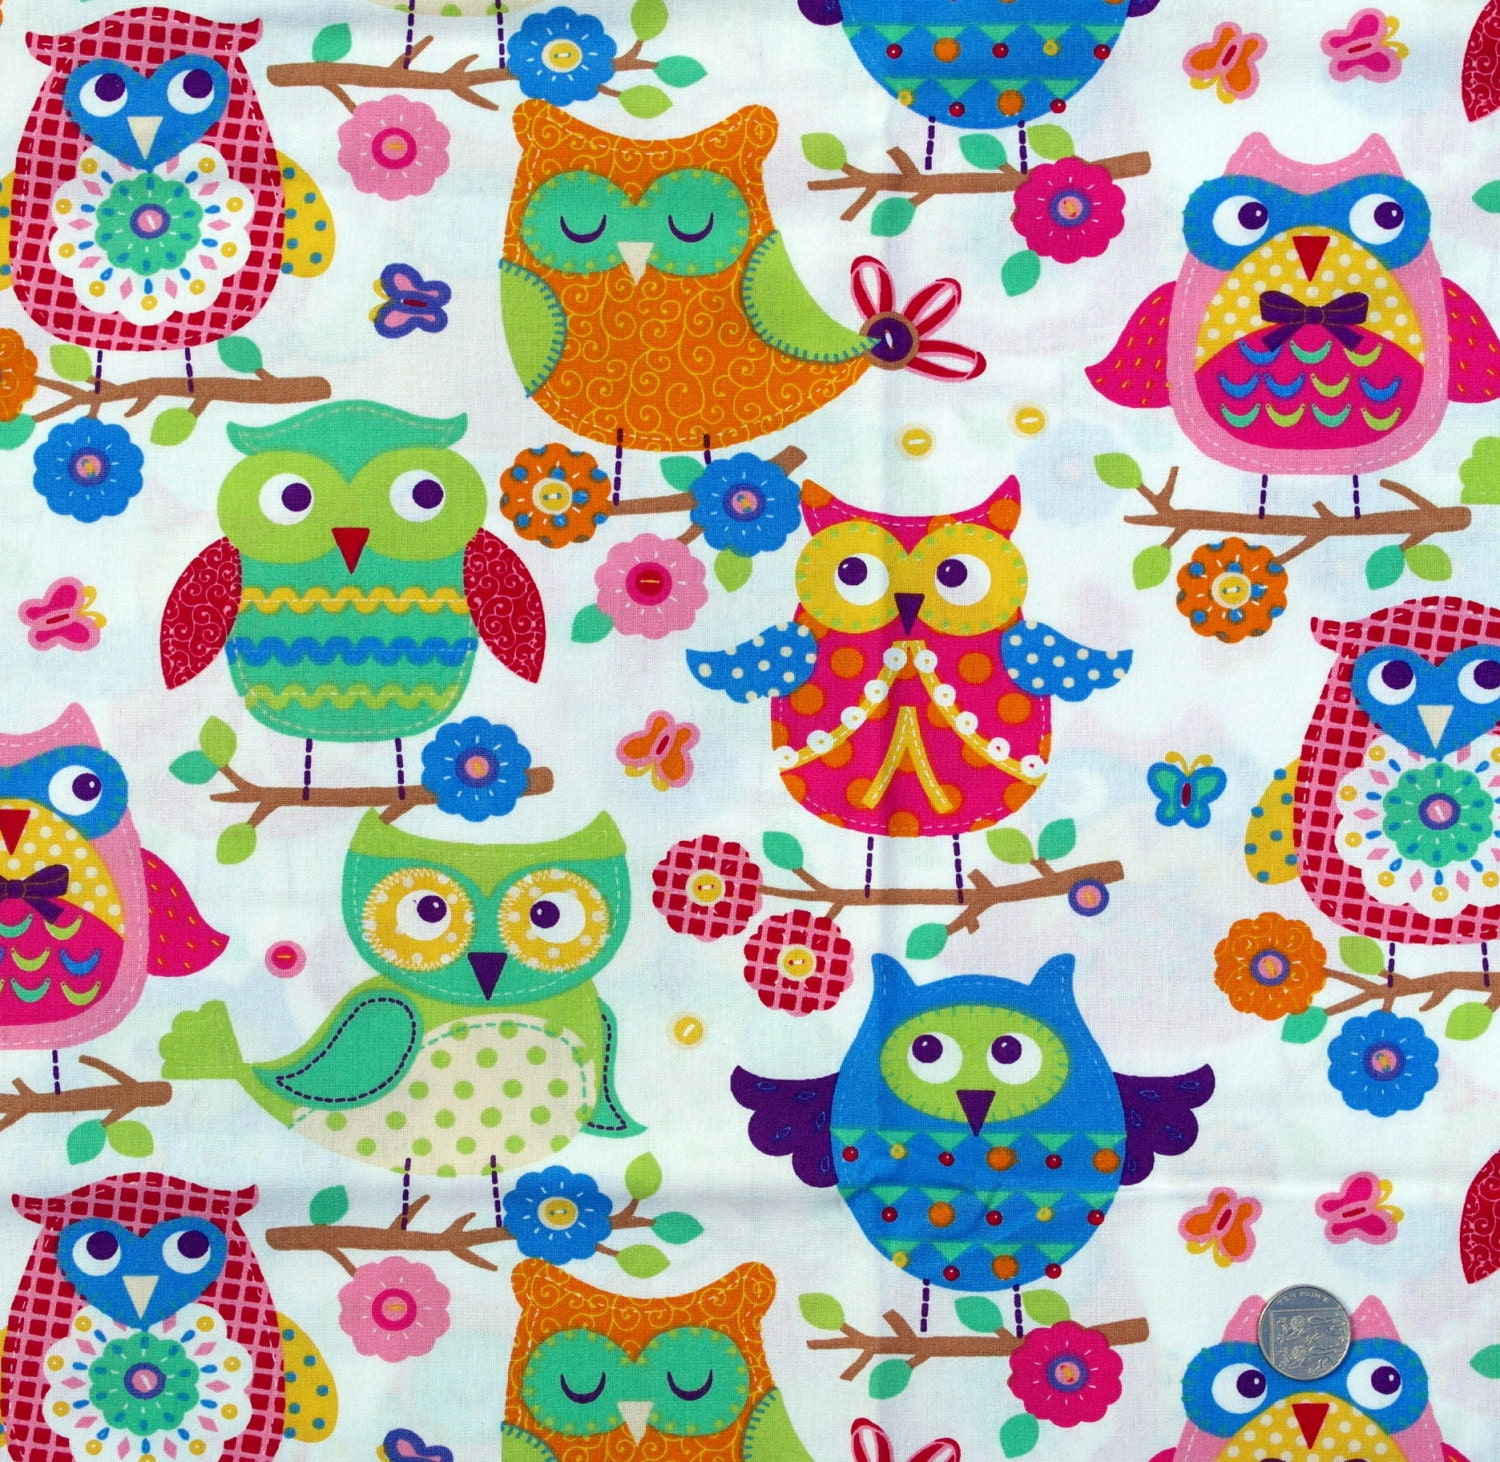 Fabric children 39 s novelty fabric owl theme on light for Kids novelty fabric